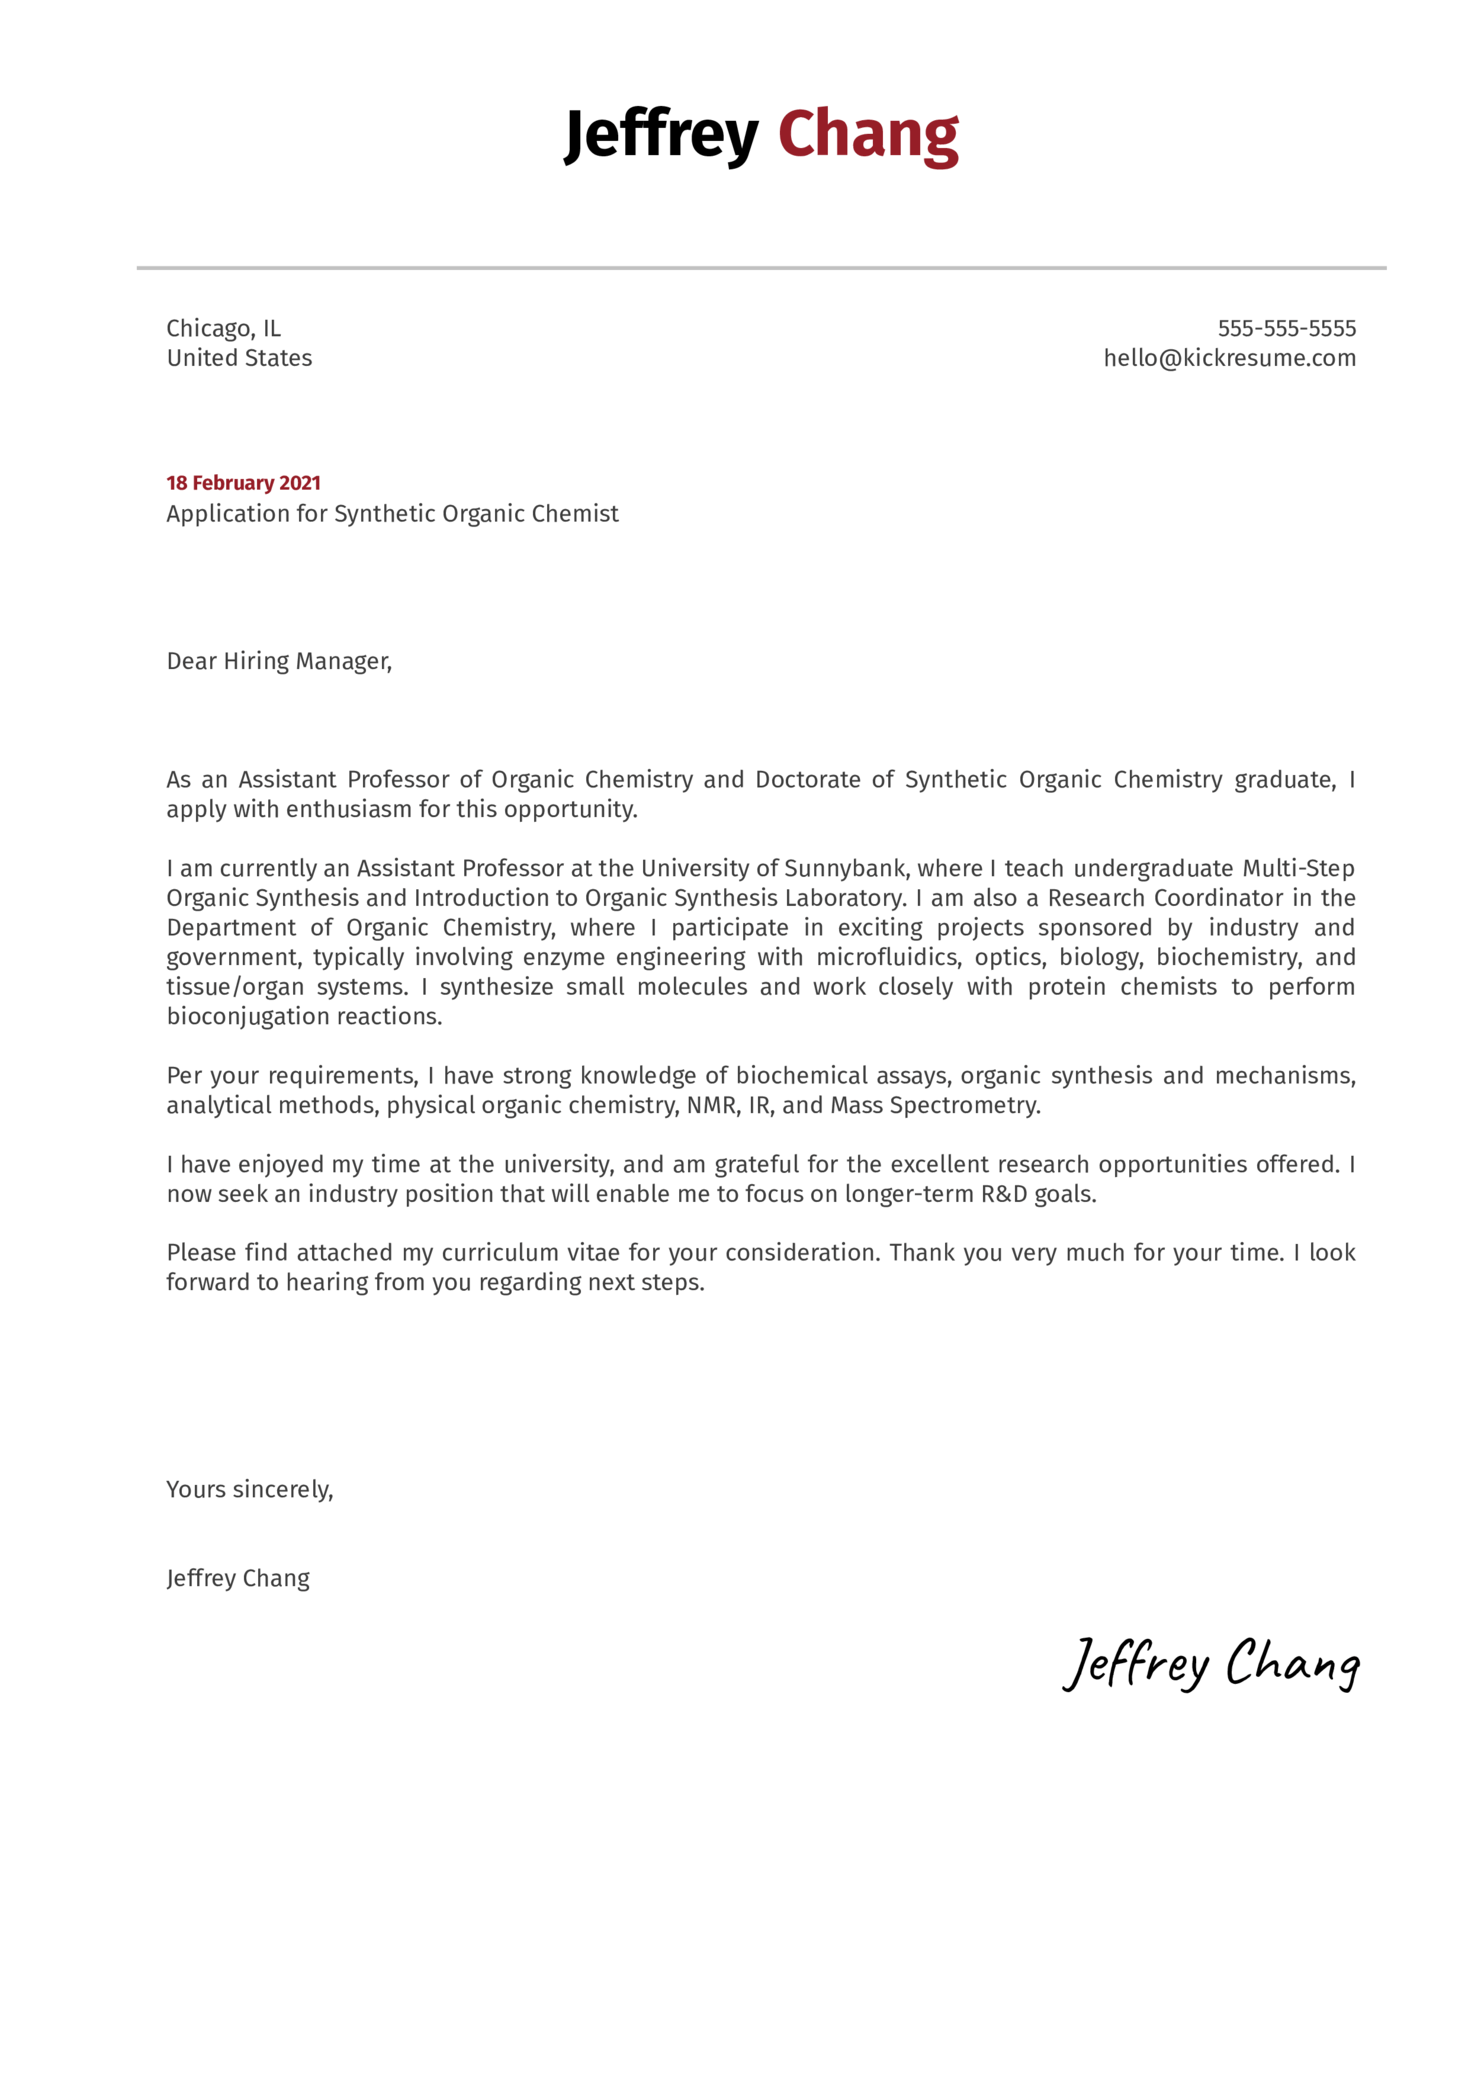 Synthetic Organic Chemist Cover Letter Example